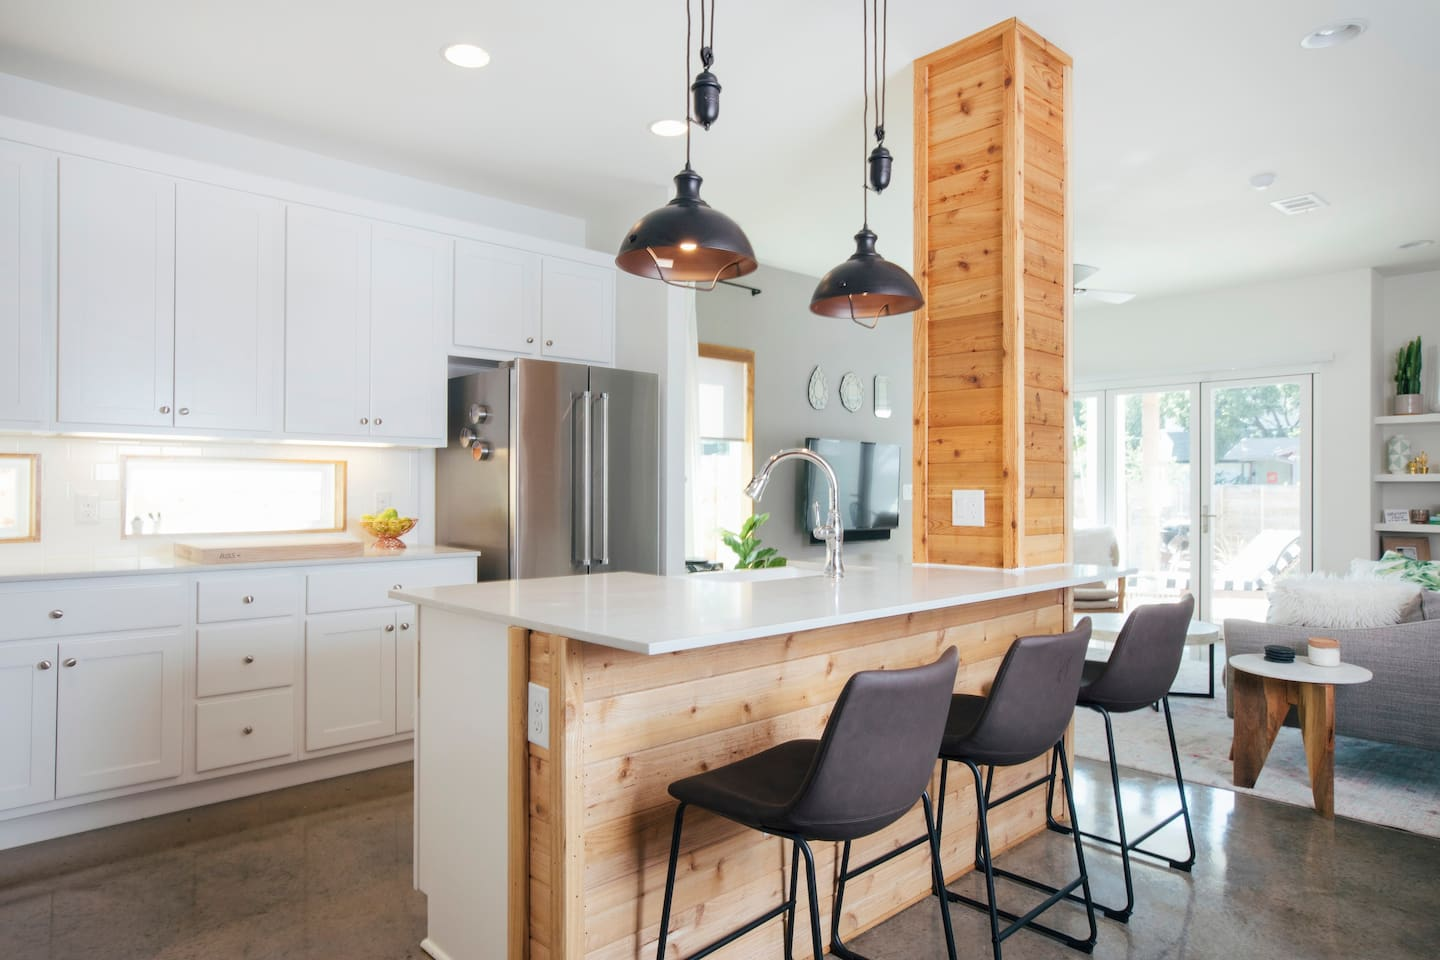 Kitchen with stainless steel appliances, island with seating